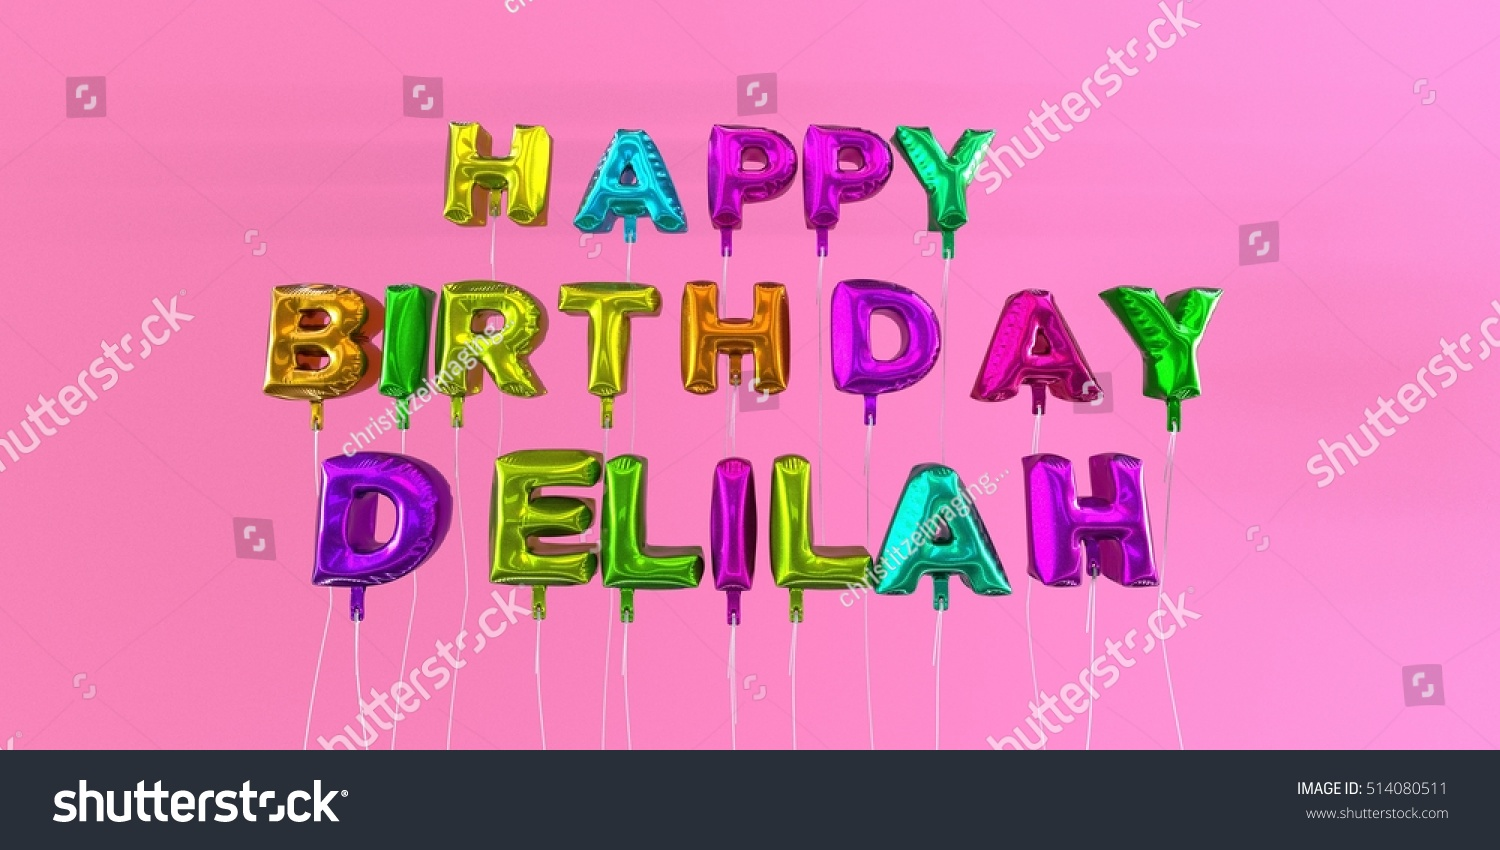 happy birthday delilah ; stock-photo-happy-birthday-delilah-card-with-balloon-text-d-rendered-stock-image-this-image-can-be-used-for-514080511